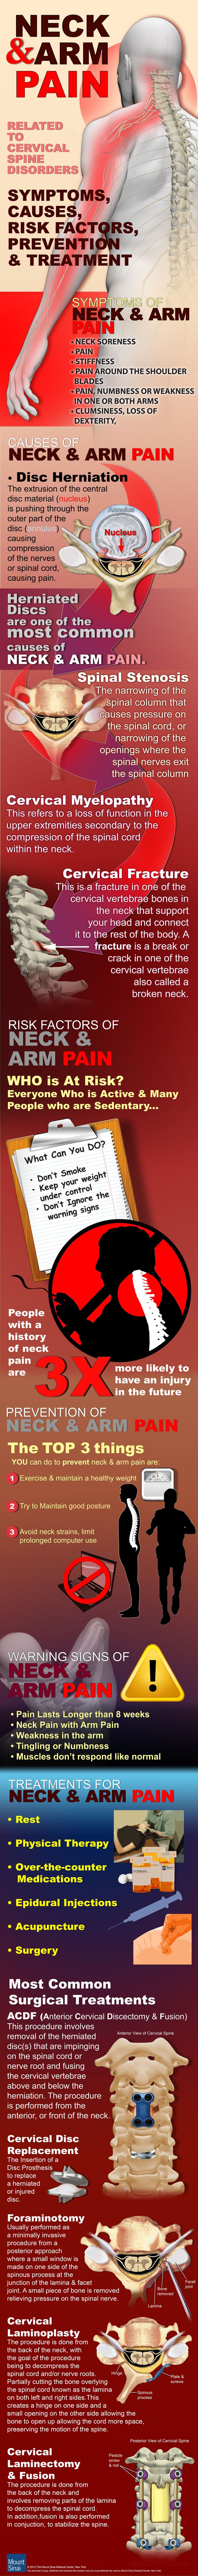 Symptoms, Causes, Risk Factors, Prevention and Treatment for Neck and Arm Pain infographic from Mount Sinai Hospital